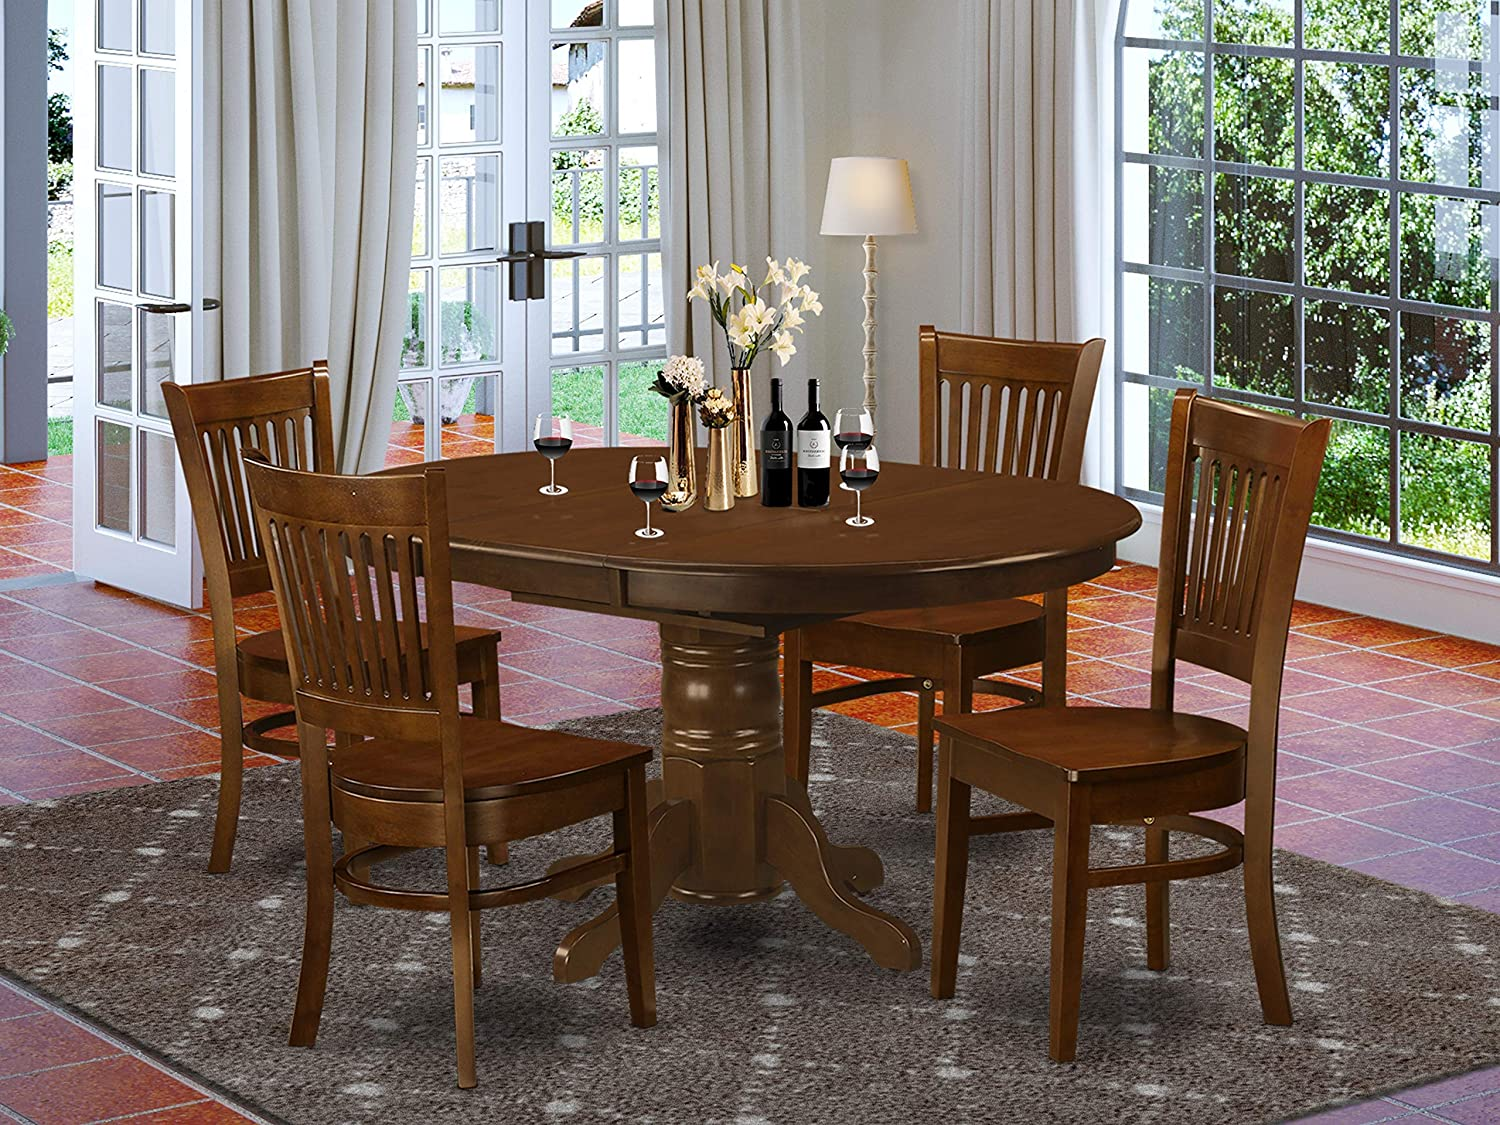 Amazon Com 5 Pc Set Kenley Dining Table With A Leaf And 4 Wood Kitchen Chairs Table Chair Sets